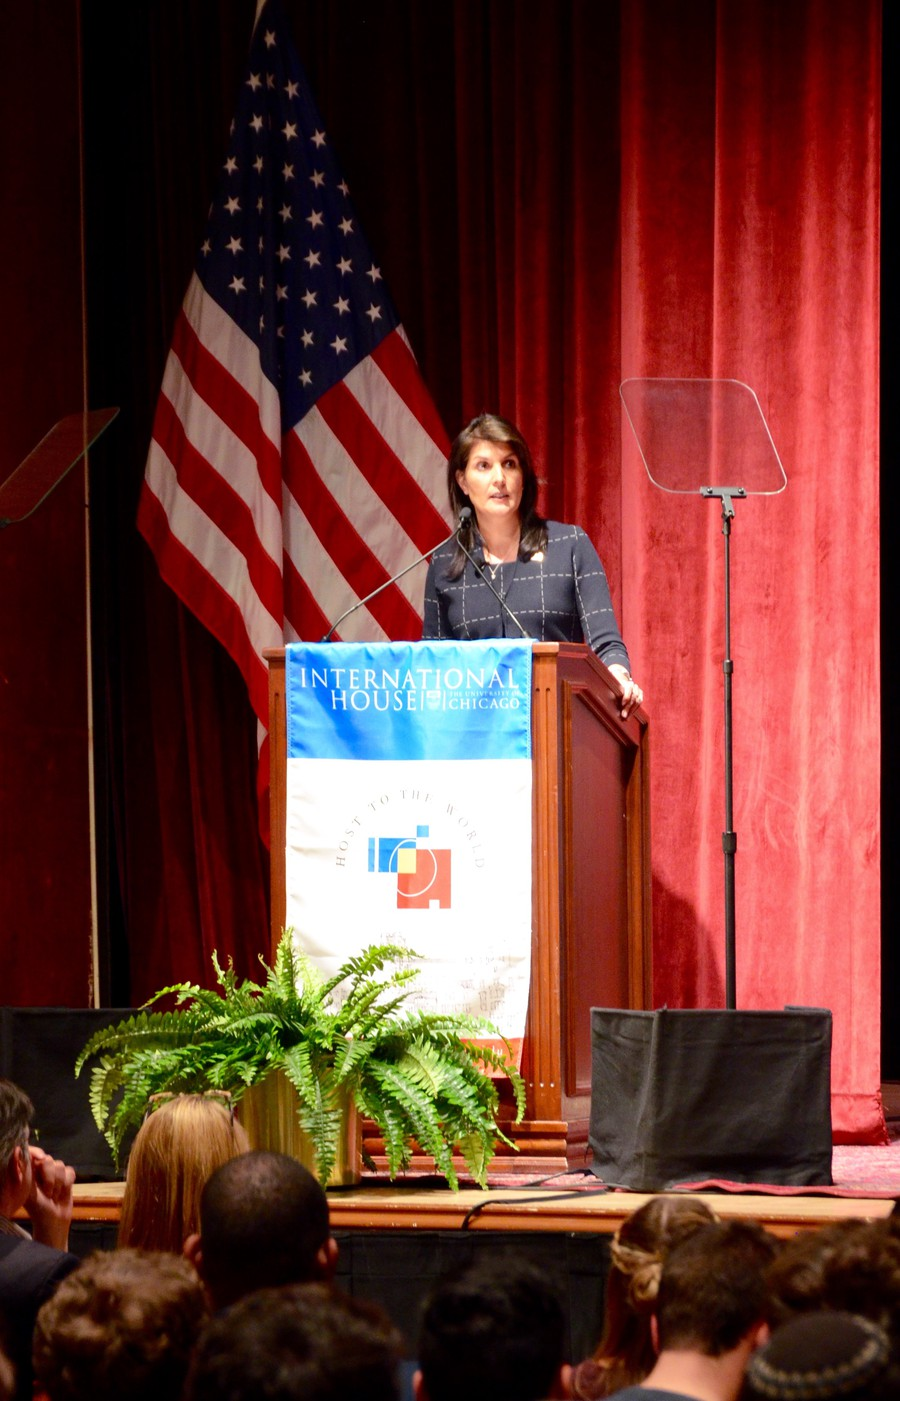 Nikki Haley, the United States' Ambassador to the UN, presents a short address to students about the value of the UN at a time of tense foreign and domestic relations.